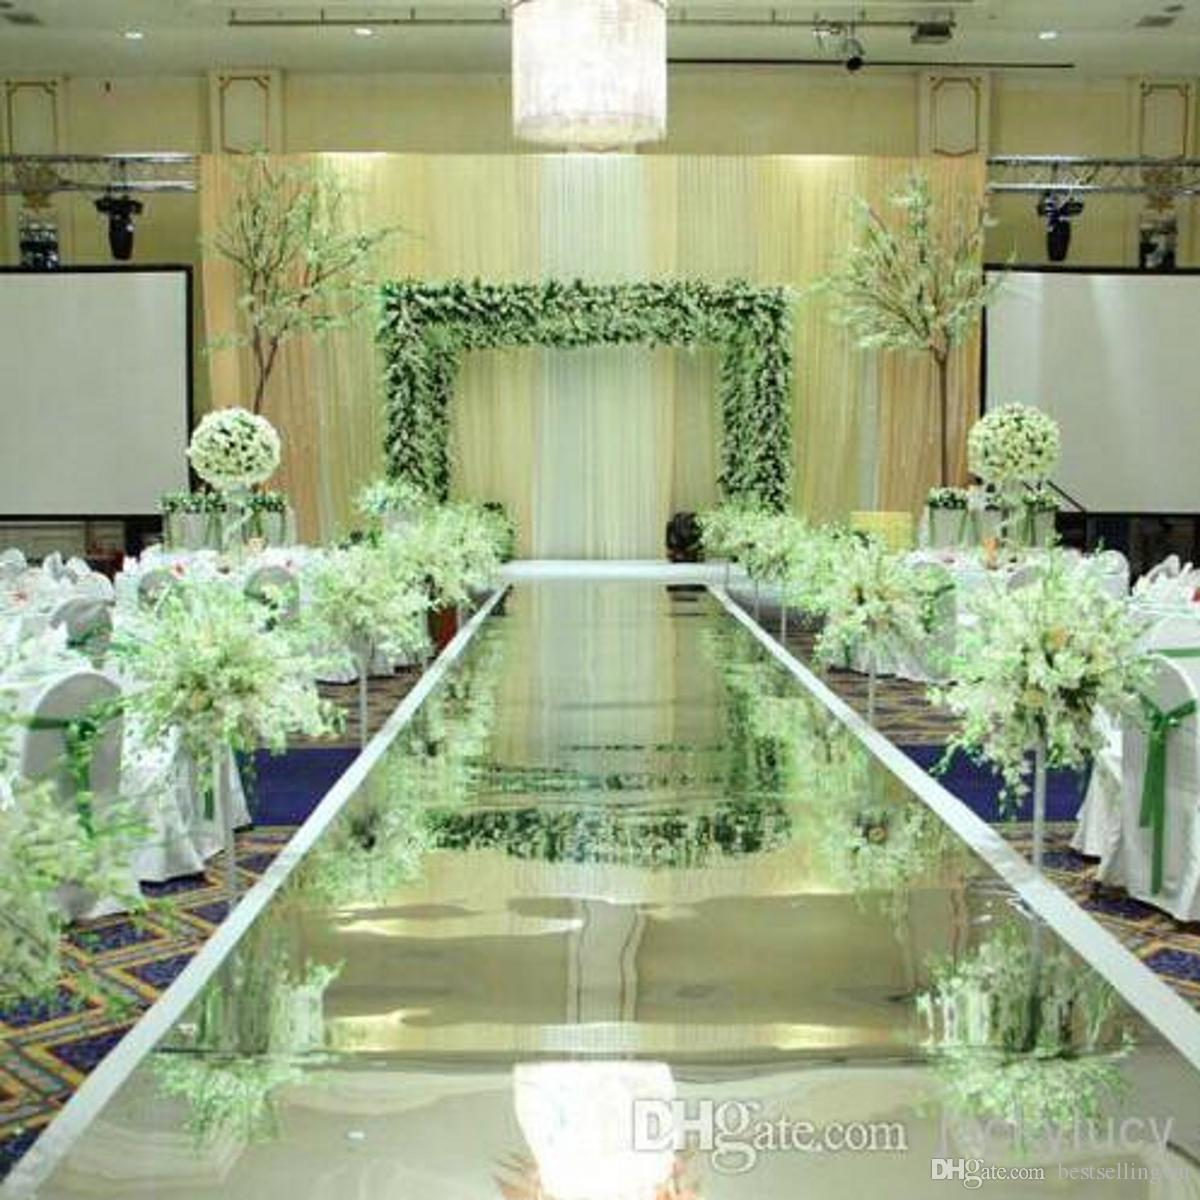 12 m wide luxury wedding centerpieces decor mirror carpet aisle 12 m wide luxury wedding centerpieces decor mirror carpet aisle runner for party backdrop decorations supplies 2015 new arrival mirror carpet wedding junglespirit